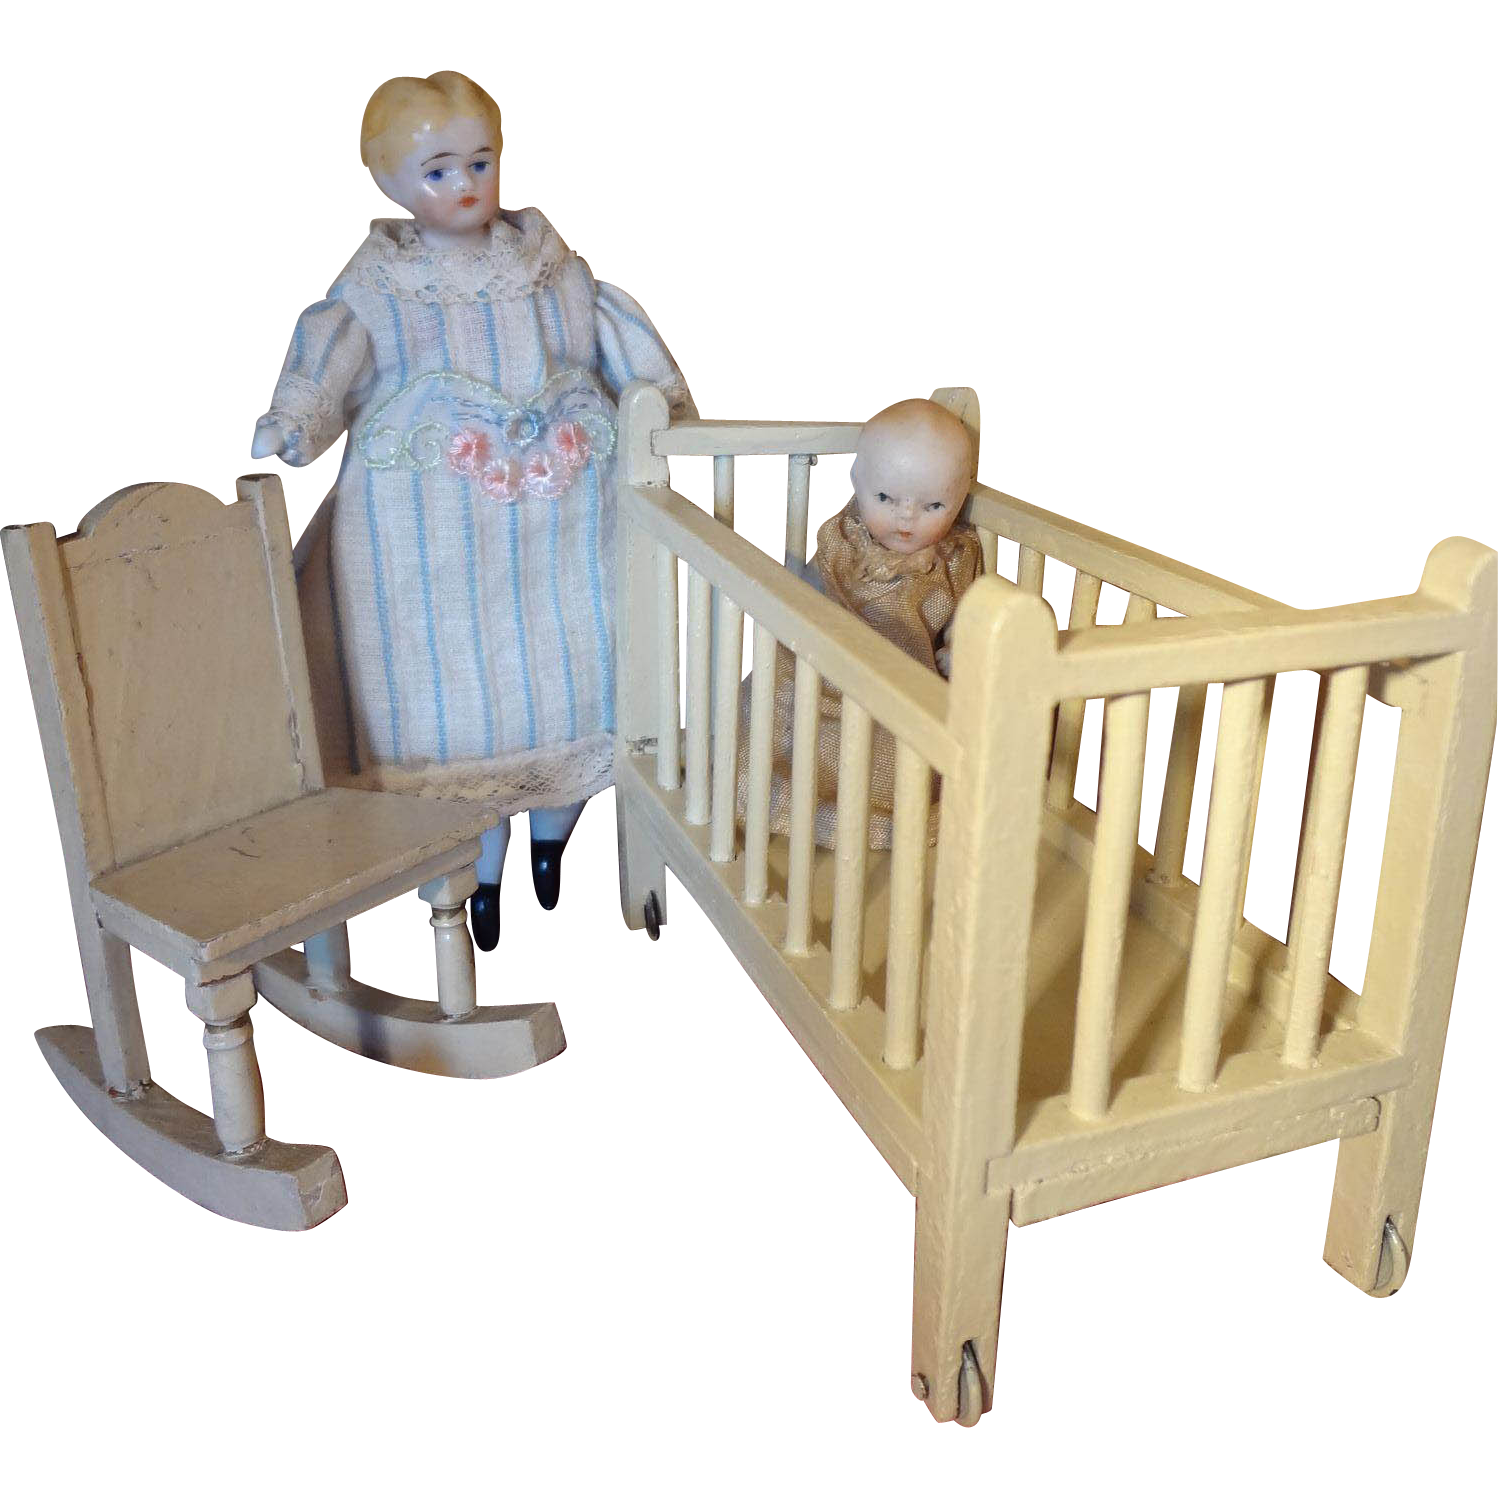 Doll House Crib and Rocking Chair from jackieeverett on Ruby Lane